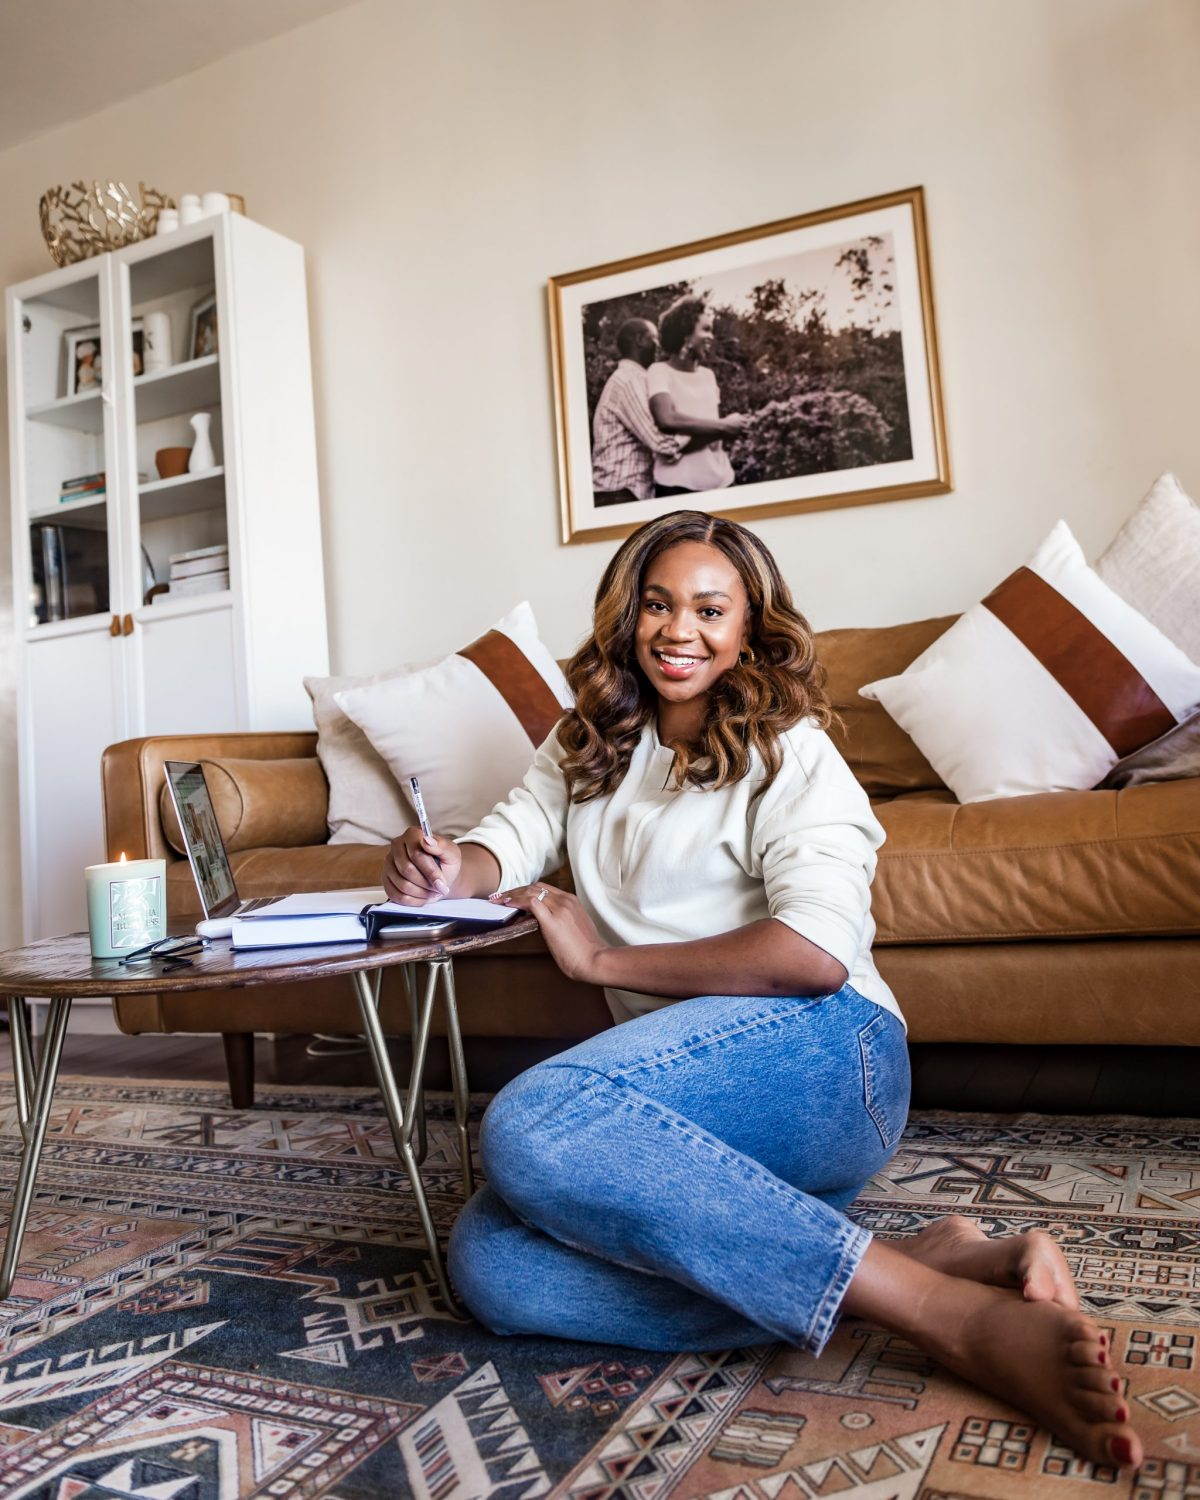 Ijeoma Kola sitting on living room floor with laptop and journal